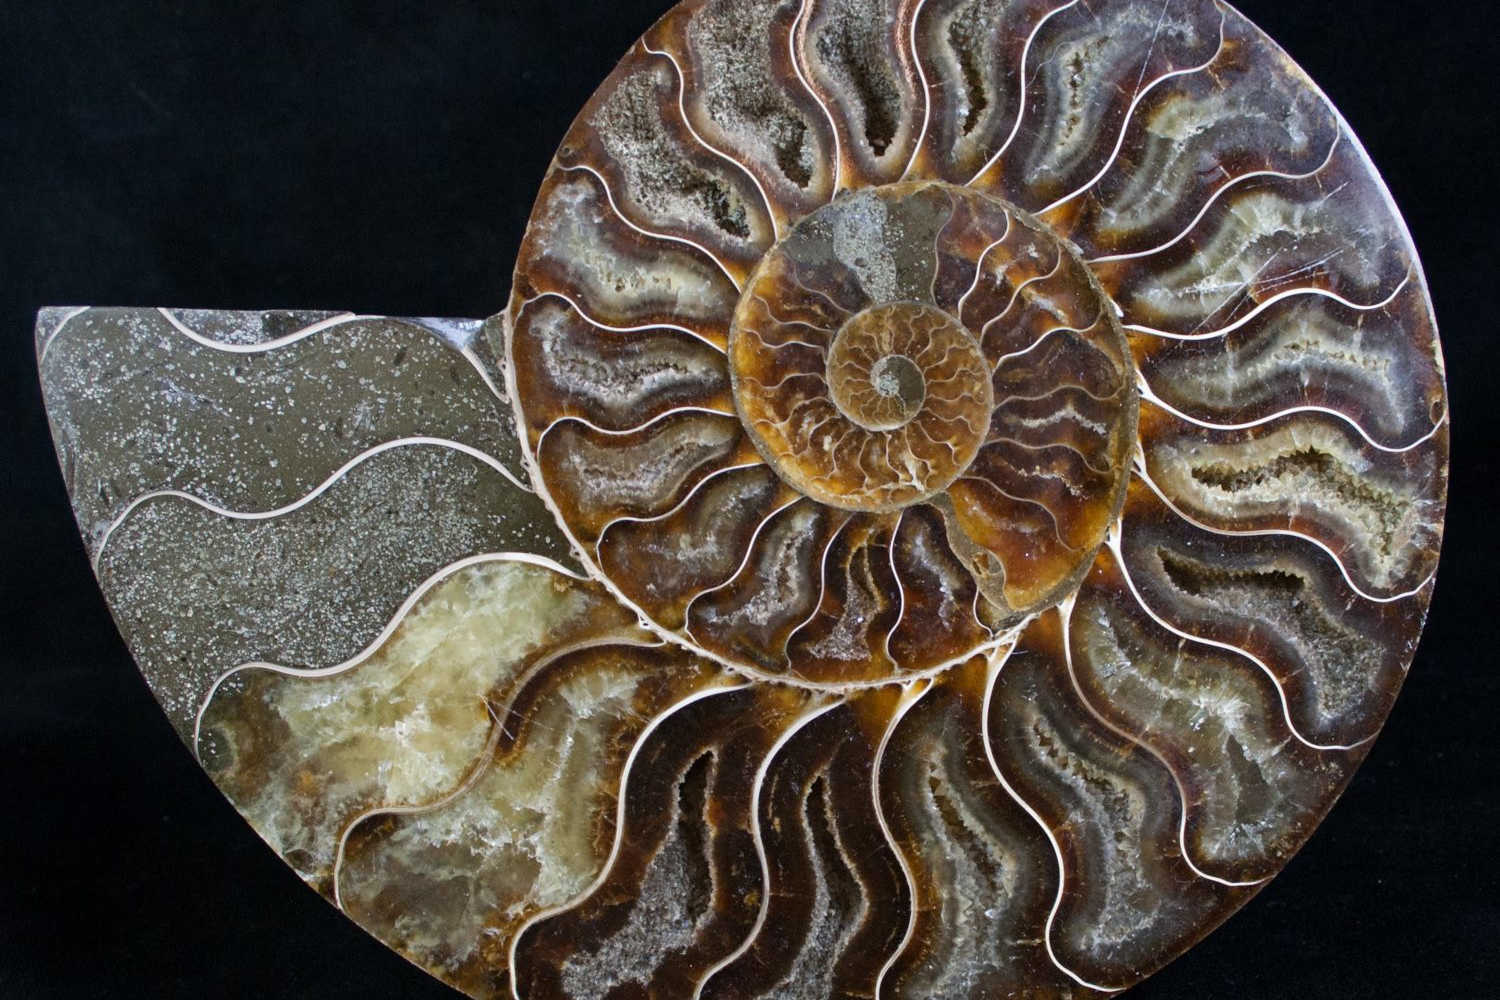 AMMONITES - Ammonites are part of an extinct group of marine mollusc animals that lived from 66 to 201 million years ago, during the Cretaceous and Jurassic periods. They had a coiled external shell similar to that of the modern nautilus. Our ammonites are sourced from Madagascar, an area renowned for producing beautifully preserved ammonite fossils, many of which display beautiful patterns that have been agatised. You can often see the inner chambers of an ammonite preserved as hollow cavities lined with crystals.